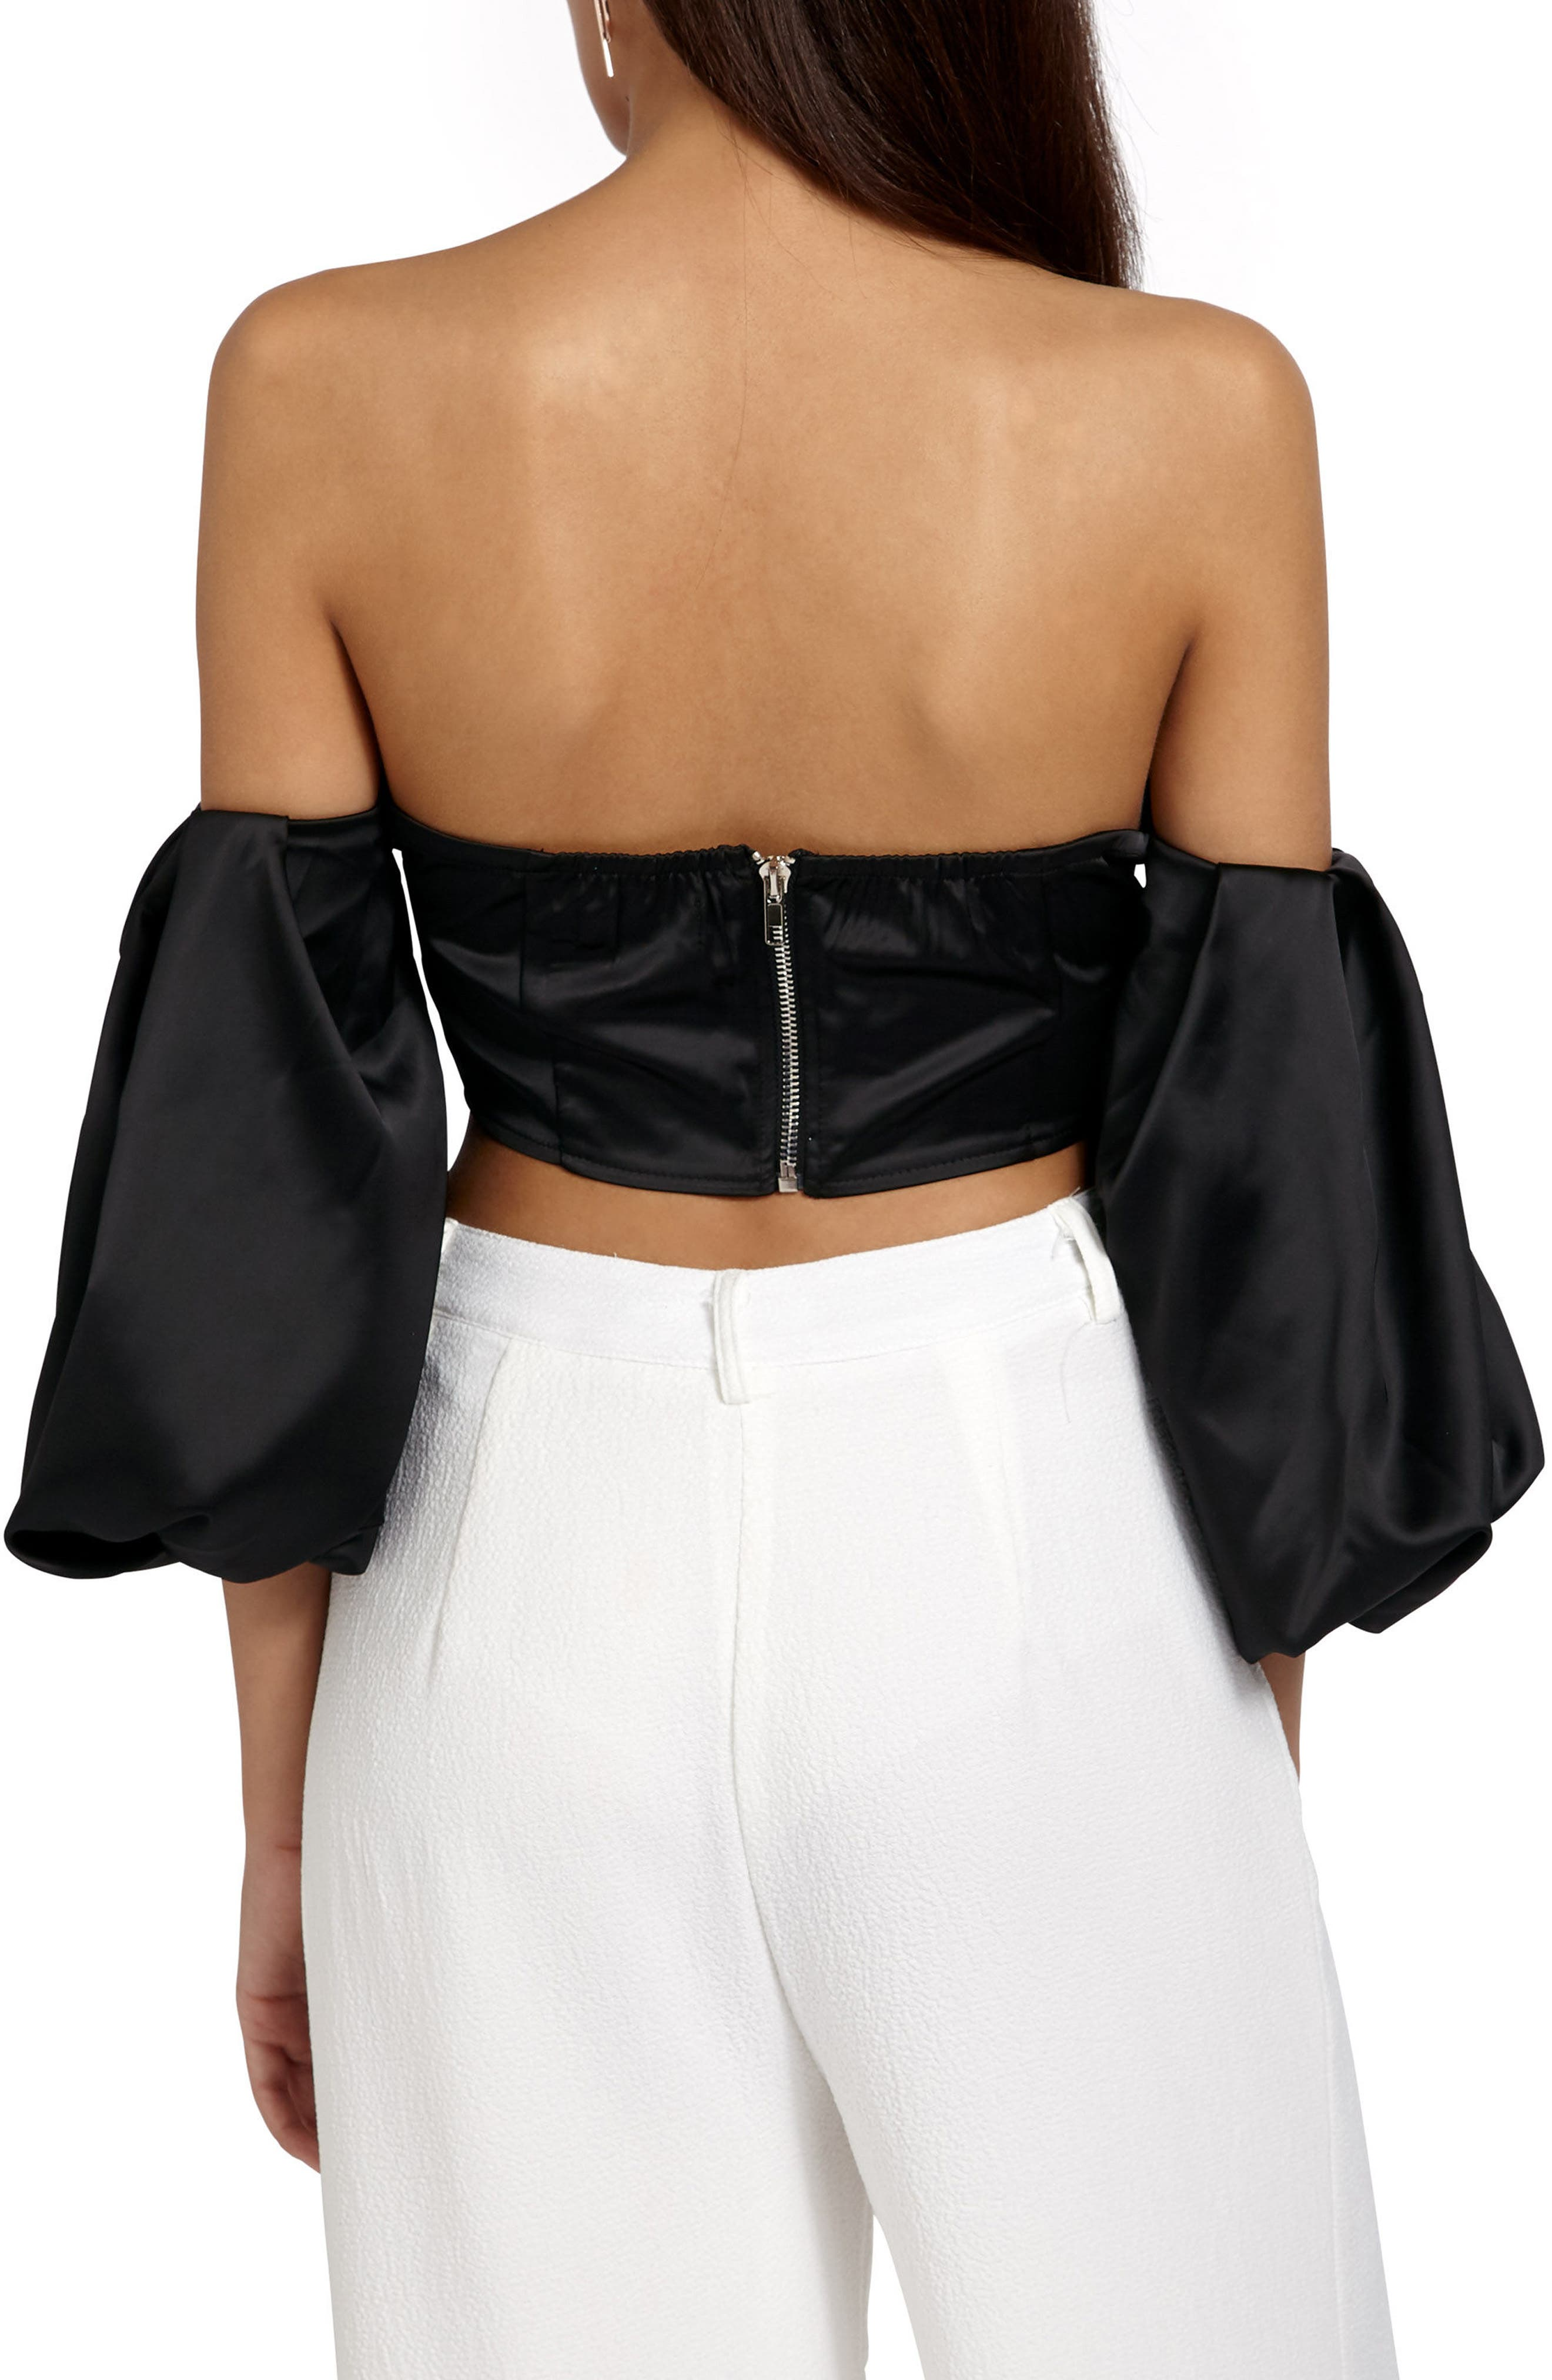 Off the Shoulder Crop Top,                             Alternate thumbnail 2, color,                             Black